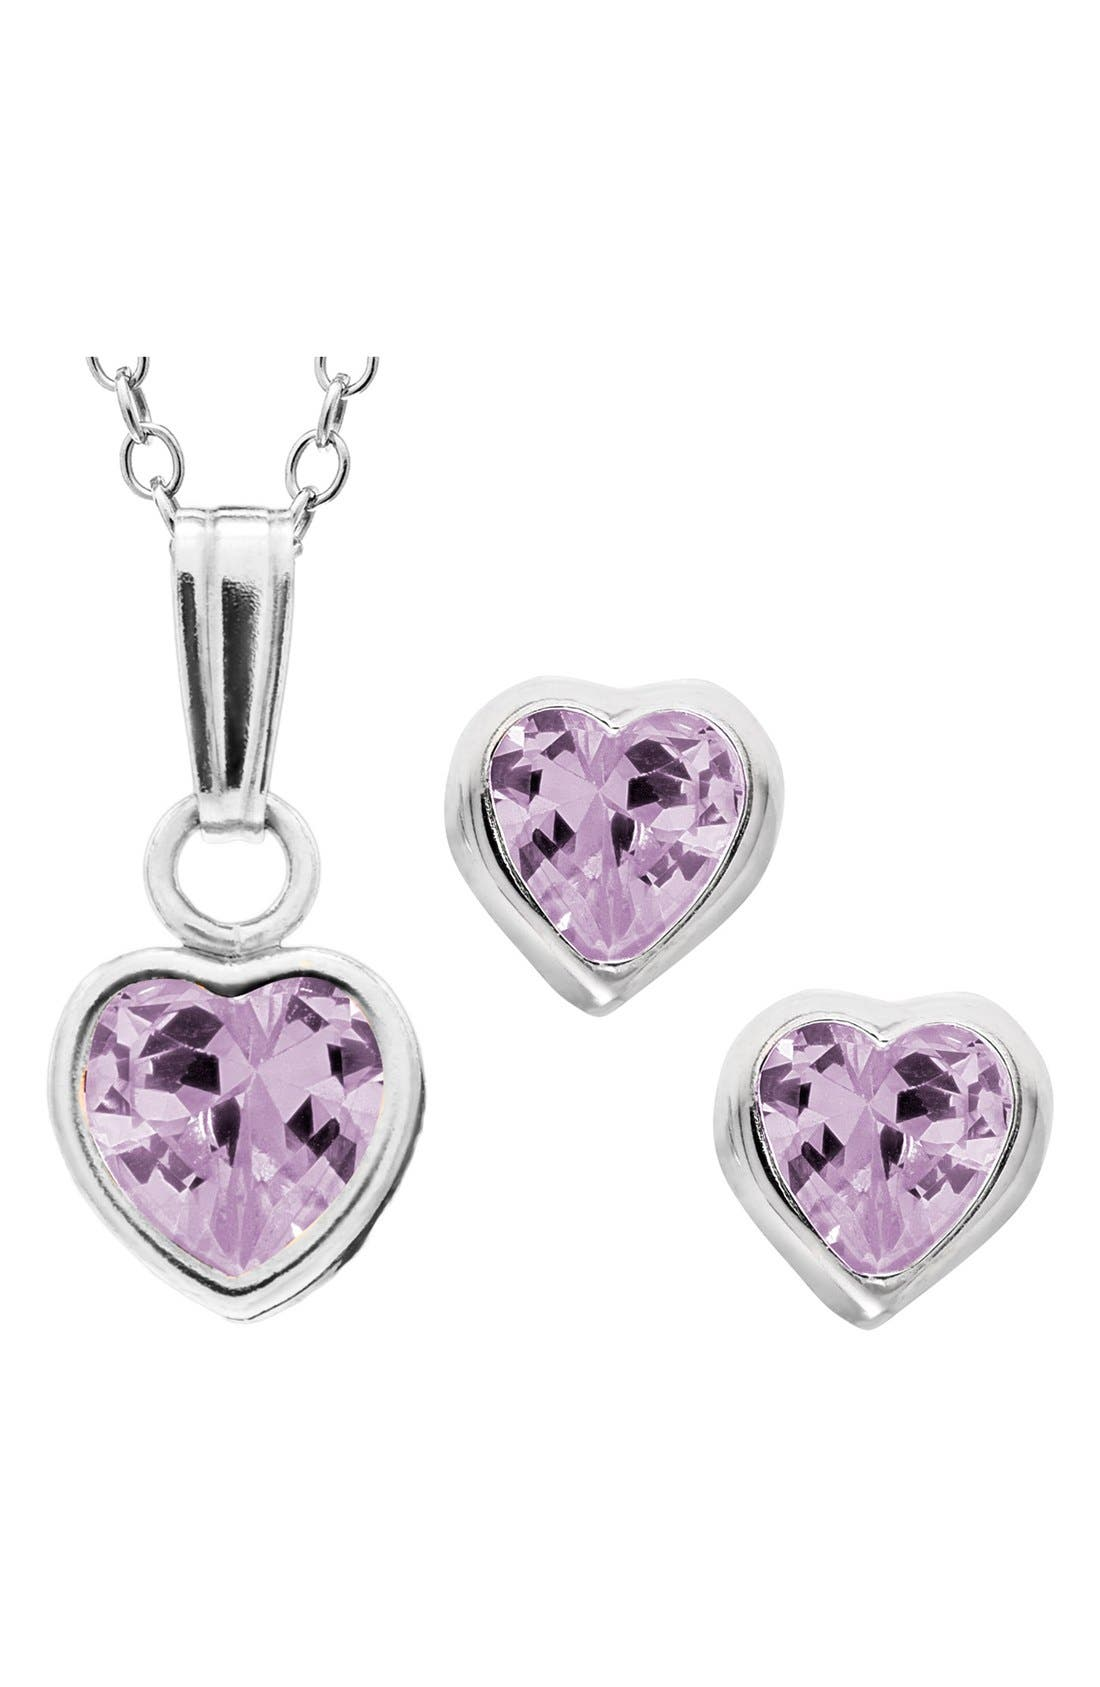 Main Image - Mignonette Sterling Silver & Cubic Zirconia Birthstone Necklace & Earrings Set (Girls)